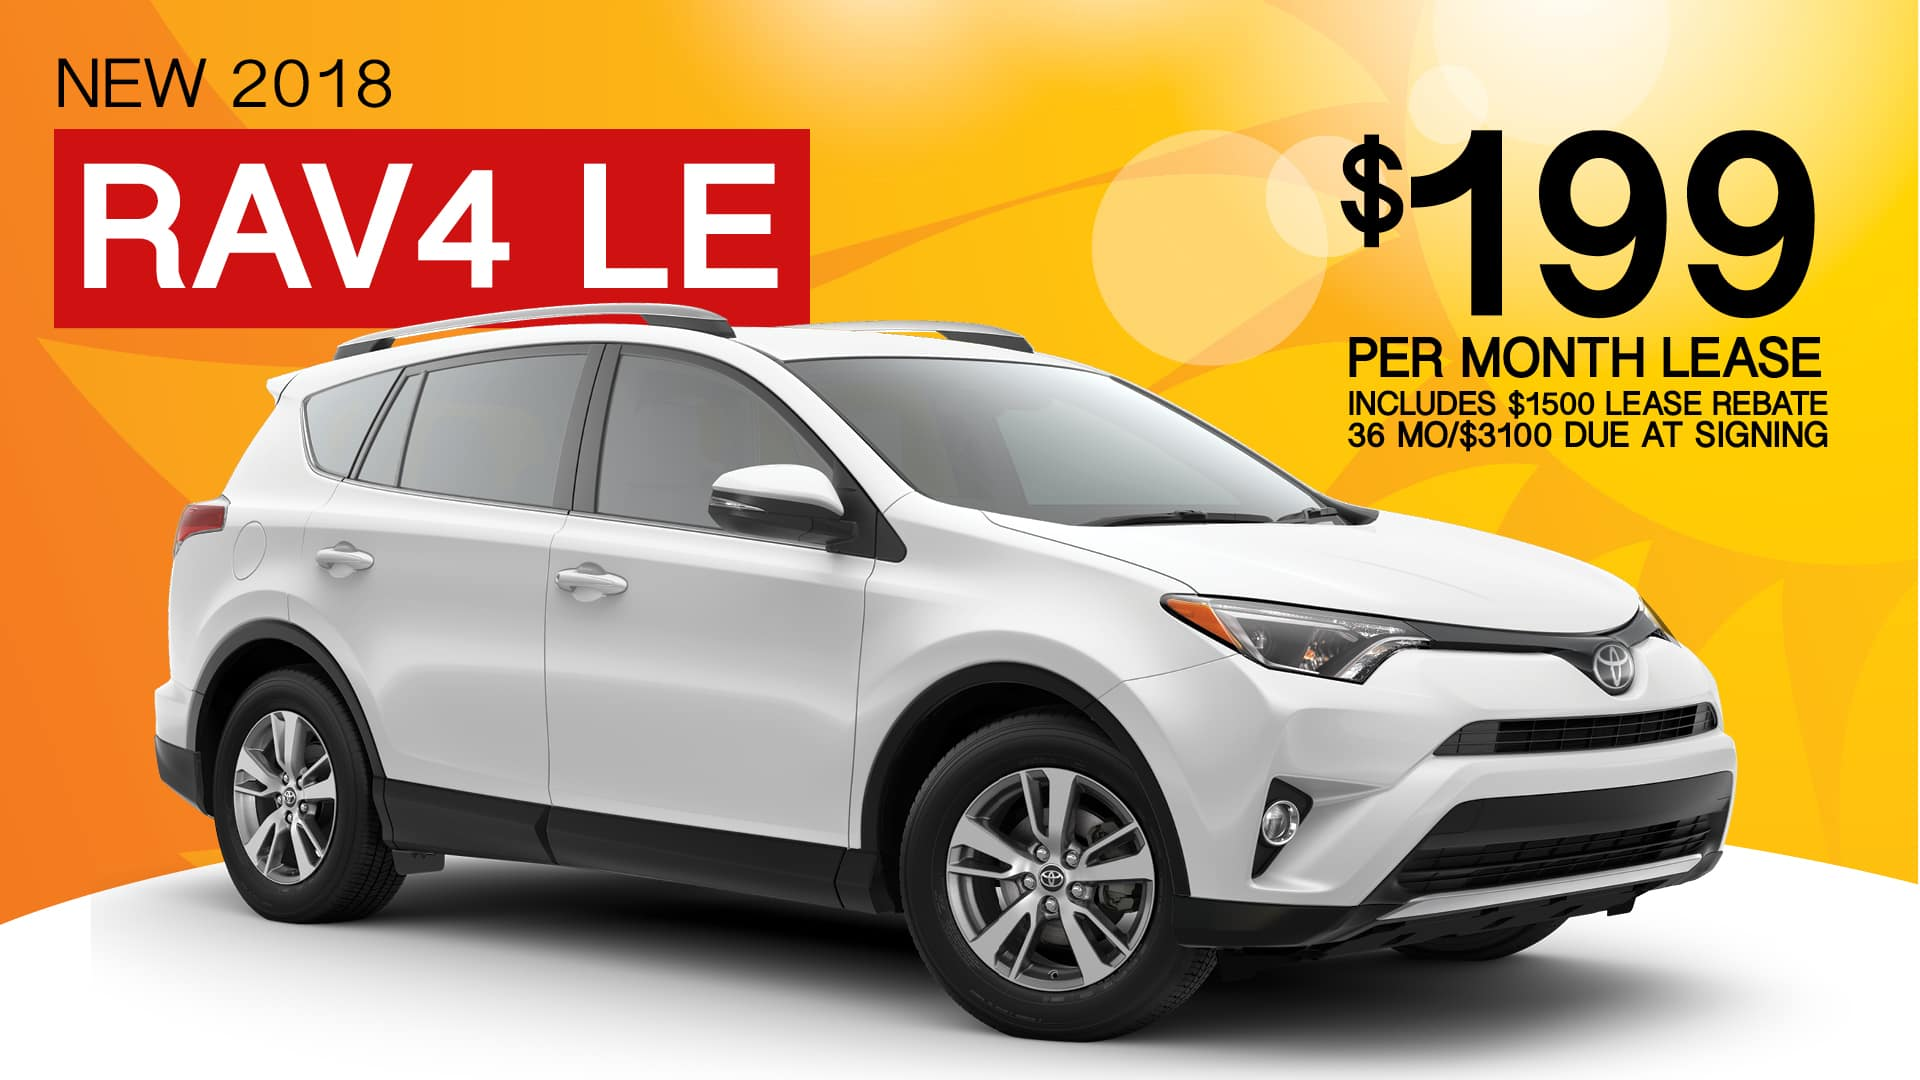 Cars for Sale Near Me 0 Down Awesome New toyota Specials In West Allis Wilde toyota